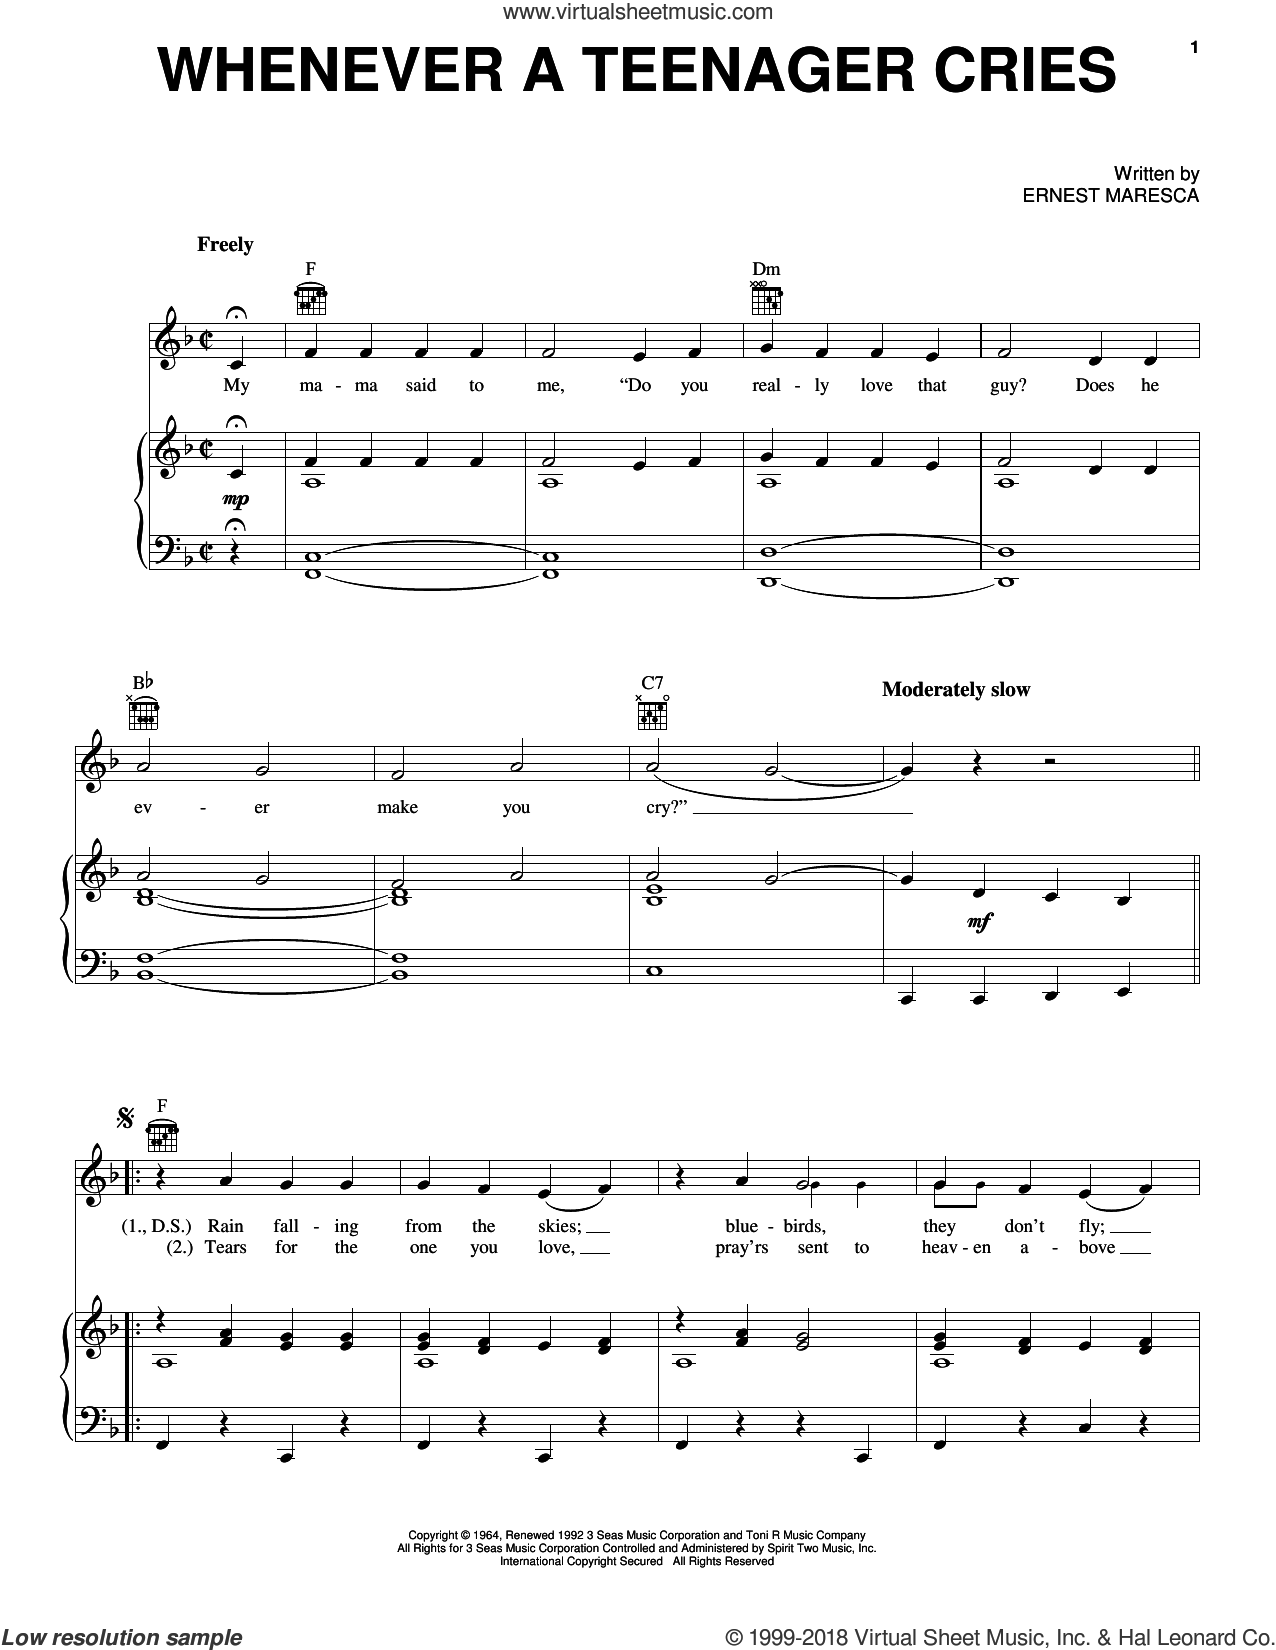 Whenever A Teenager Cries sheet music for voice, piano or guitar by Reparata & The Delrons